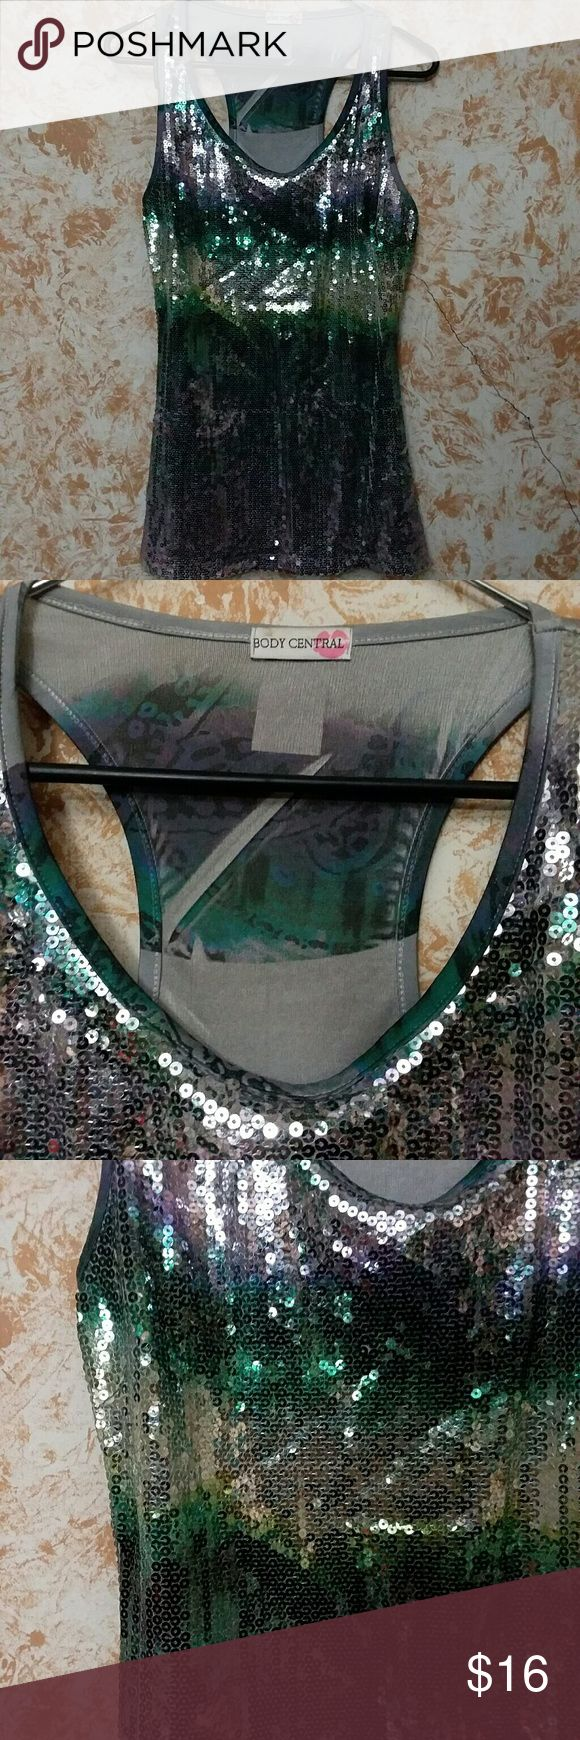 ☆ Sequin Party Tank ☆ EUC.  Body Central sequin tank.  Great for adding some bling to an outfit. Body Central Tops Tank Tops